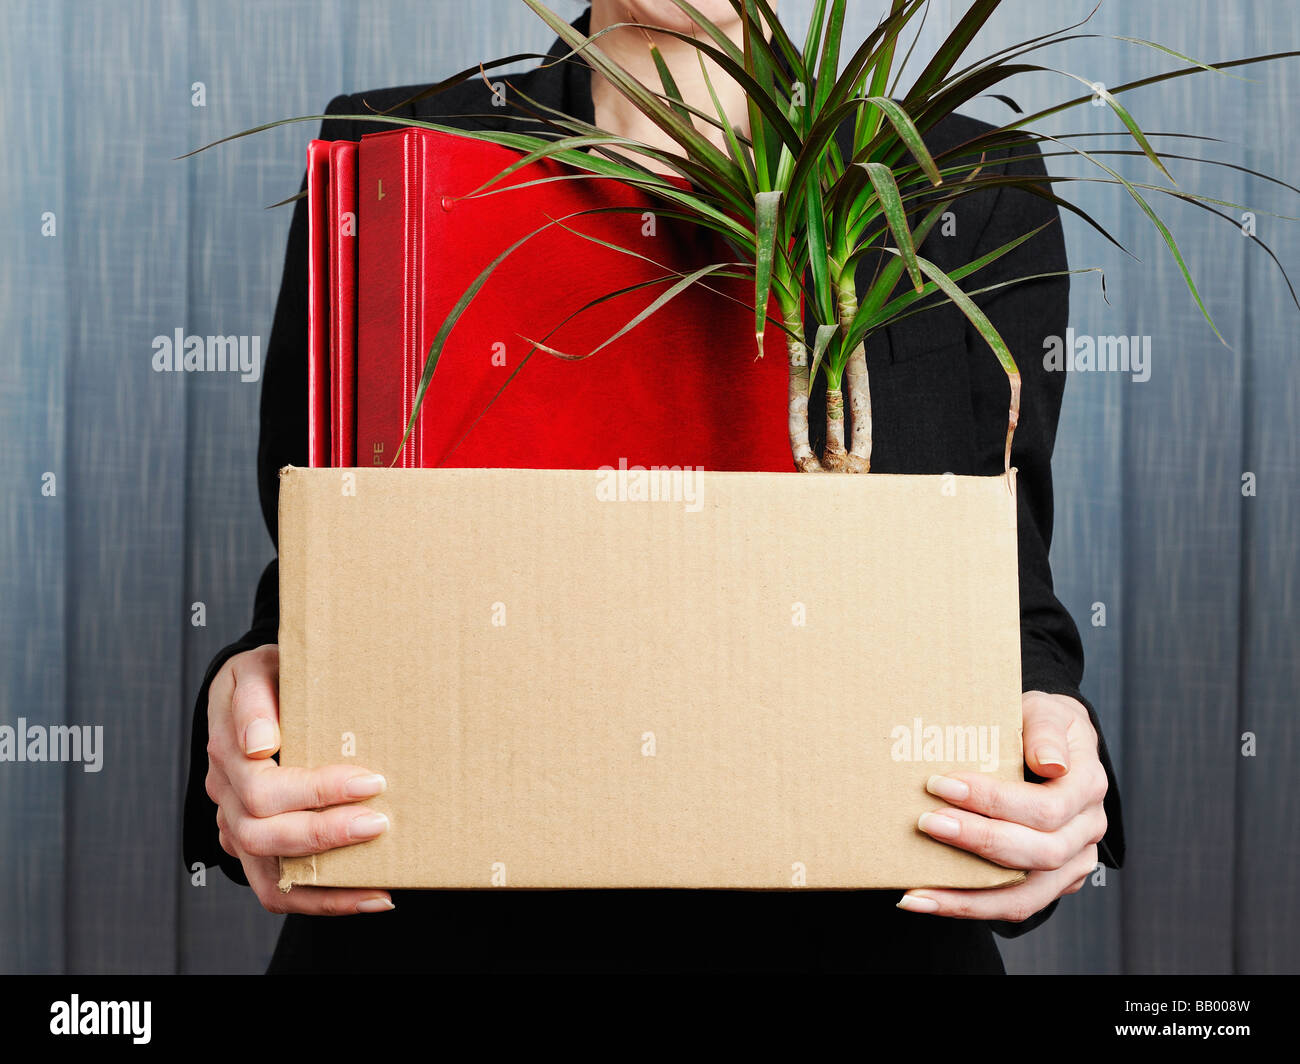 Businesswoman Clearing Her Office - Stock Image